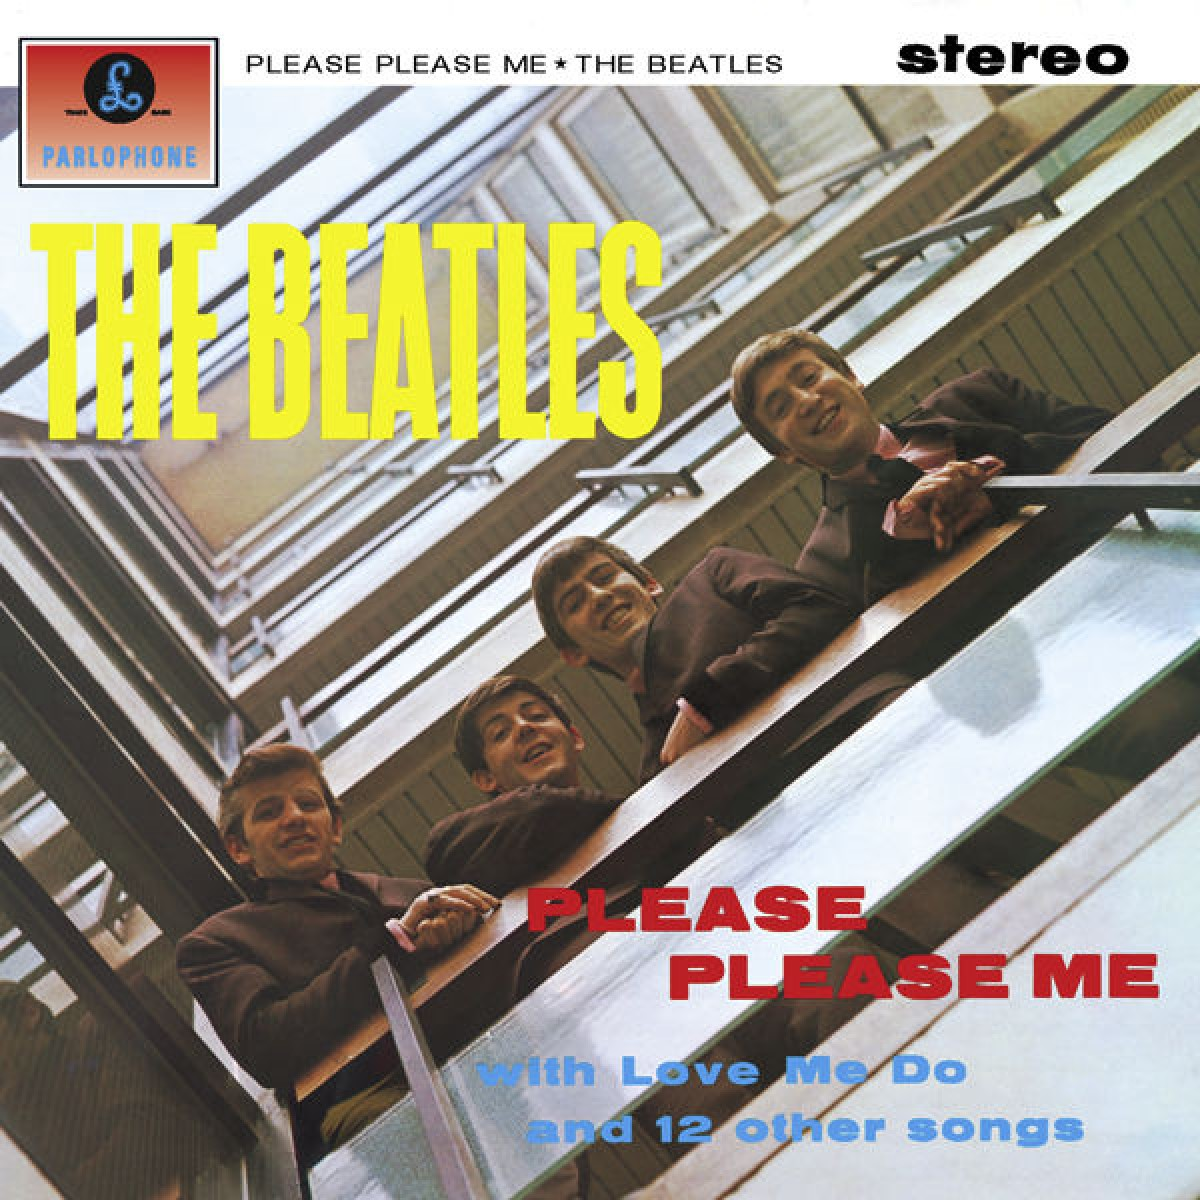 The Beatles - Please Please Me (2009 Remaster) CD - 00946 3824162